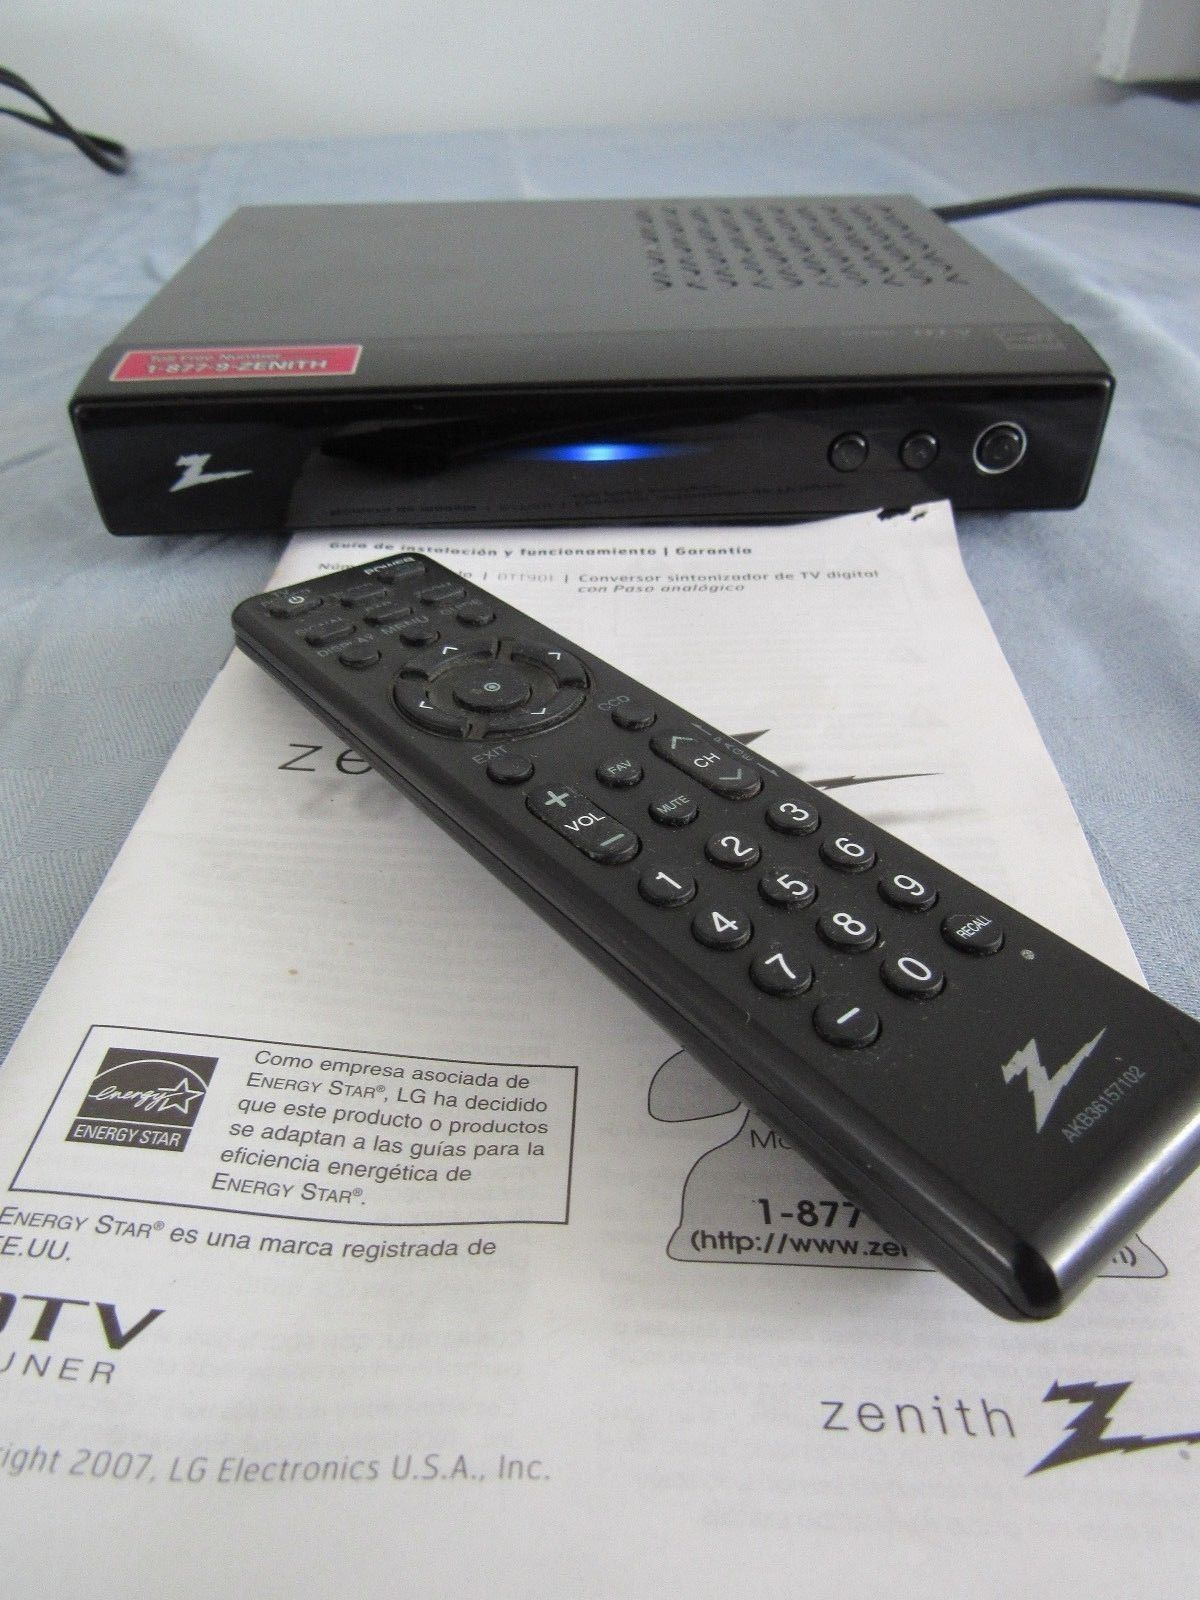 Zenith Digital DTV TV Tuner Converter Box Model DTT901 w/ Remote & Manual